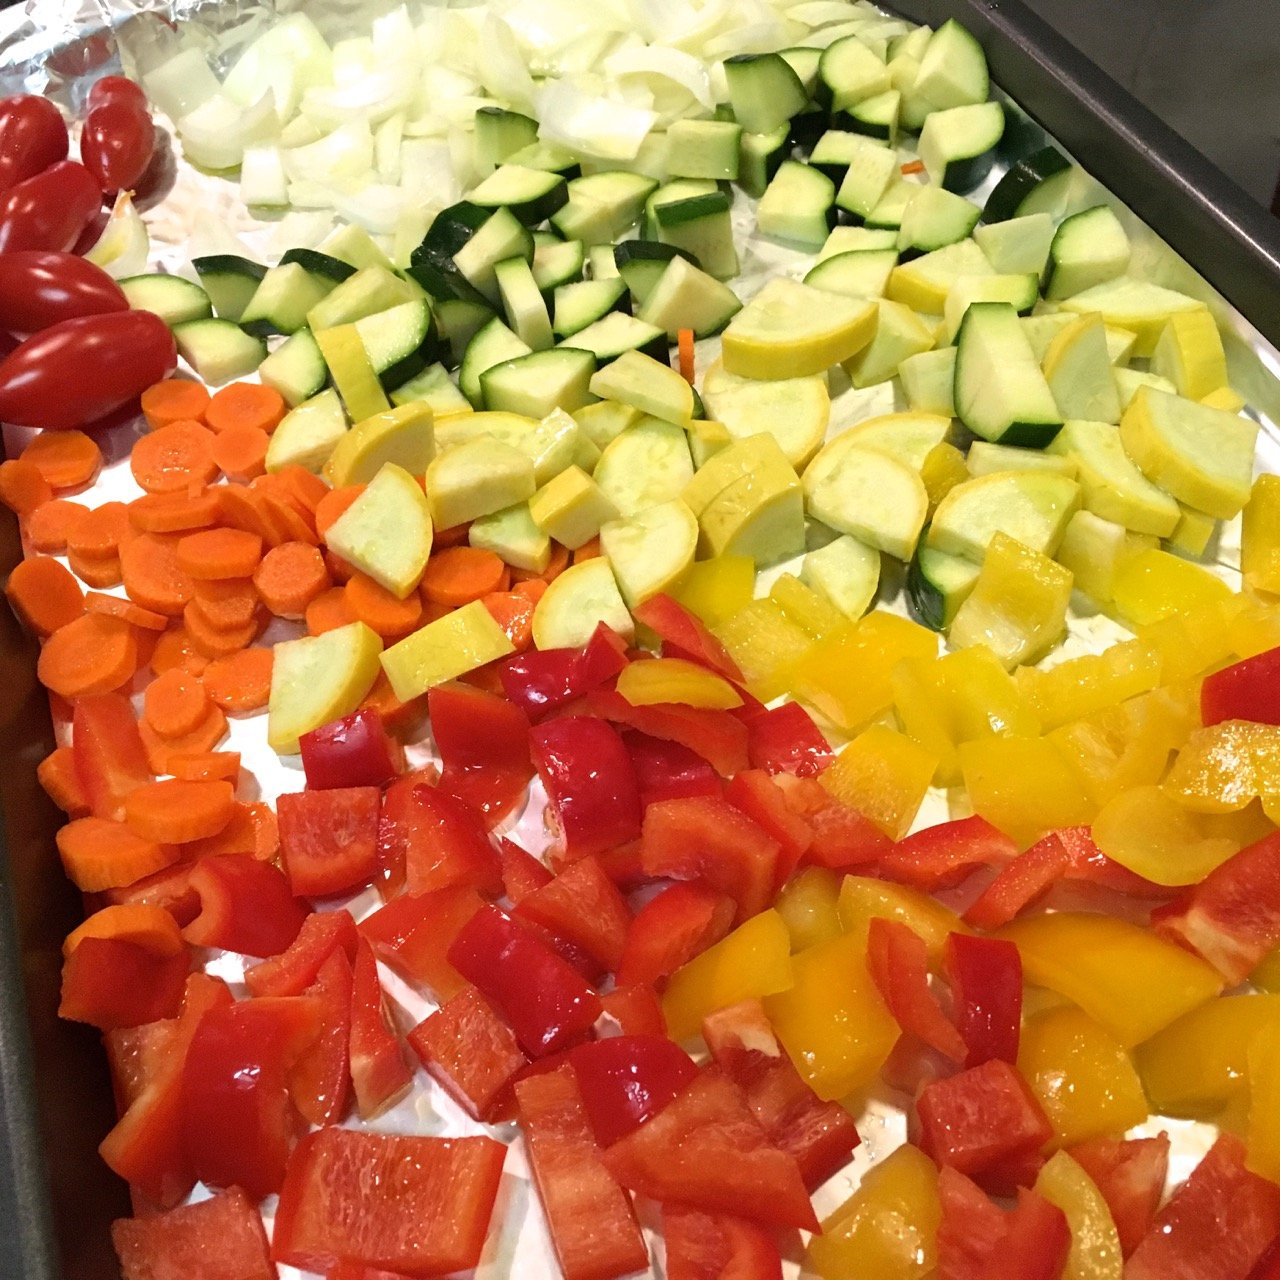 Italian Oven-Roasted Vegetables, Gluten-Free, Dairy-Free